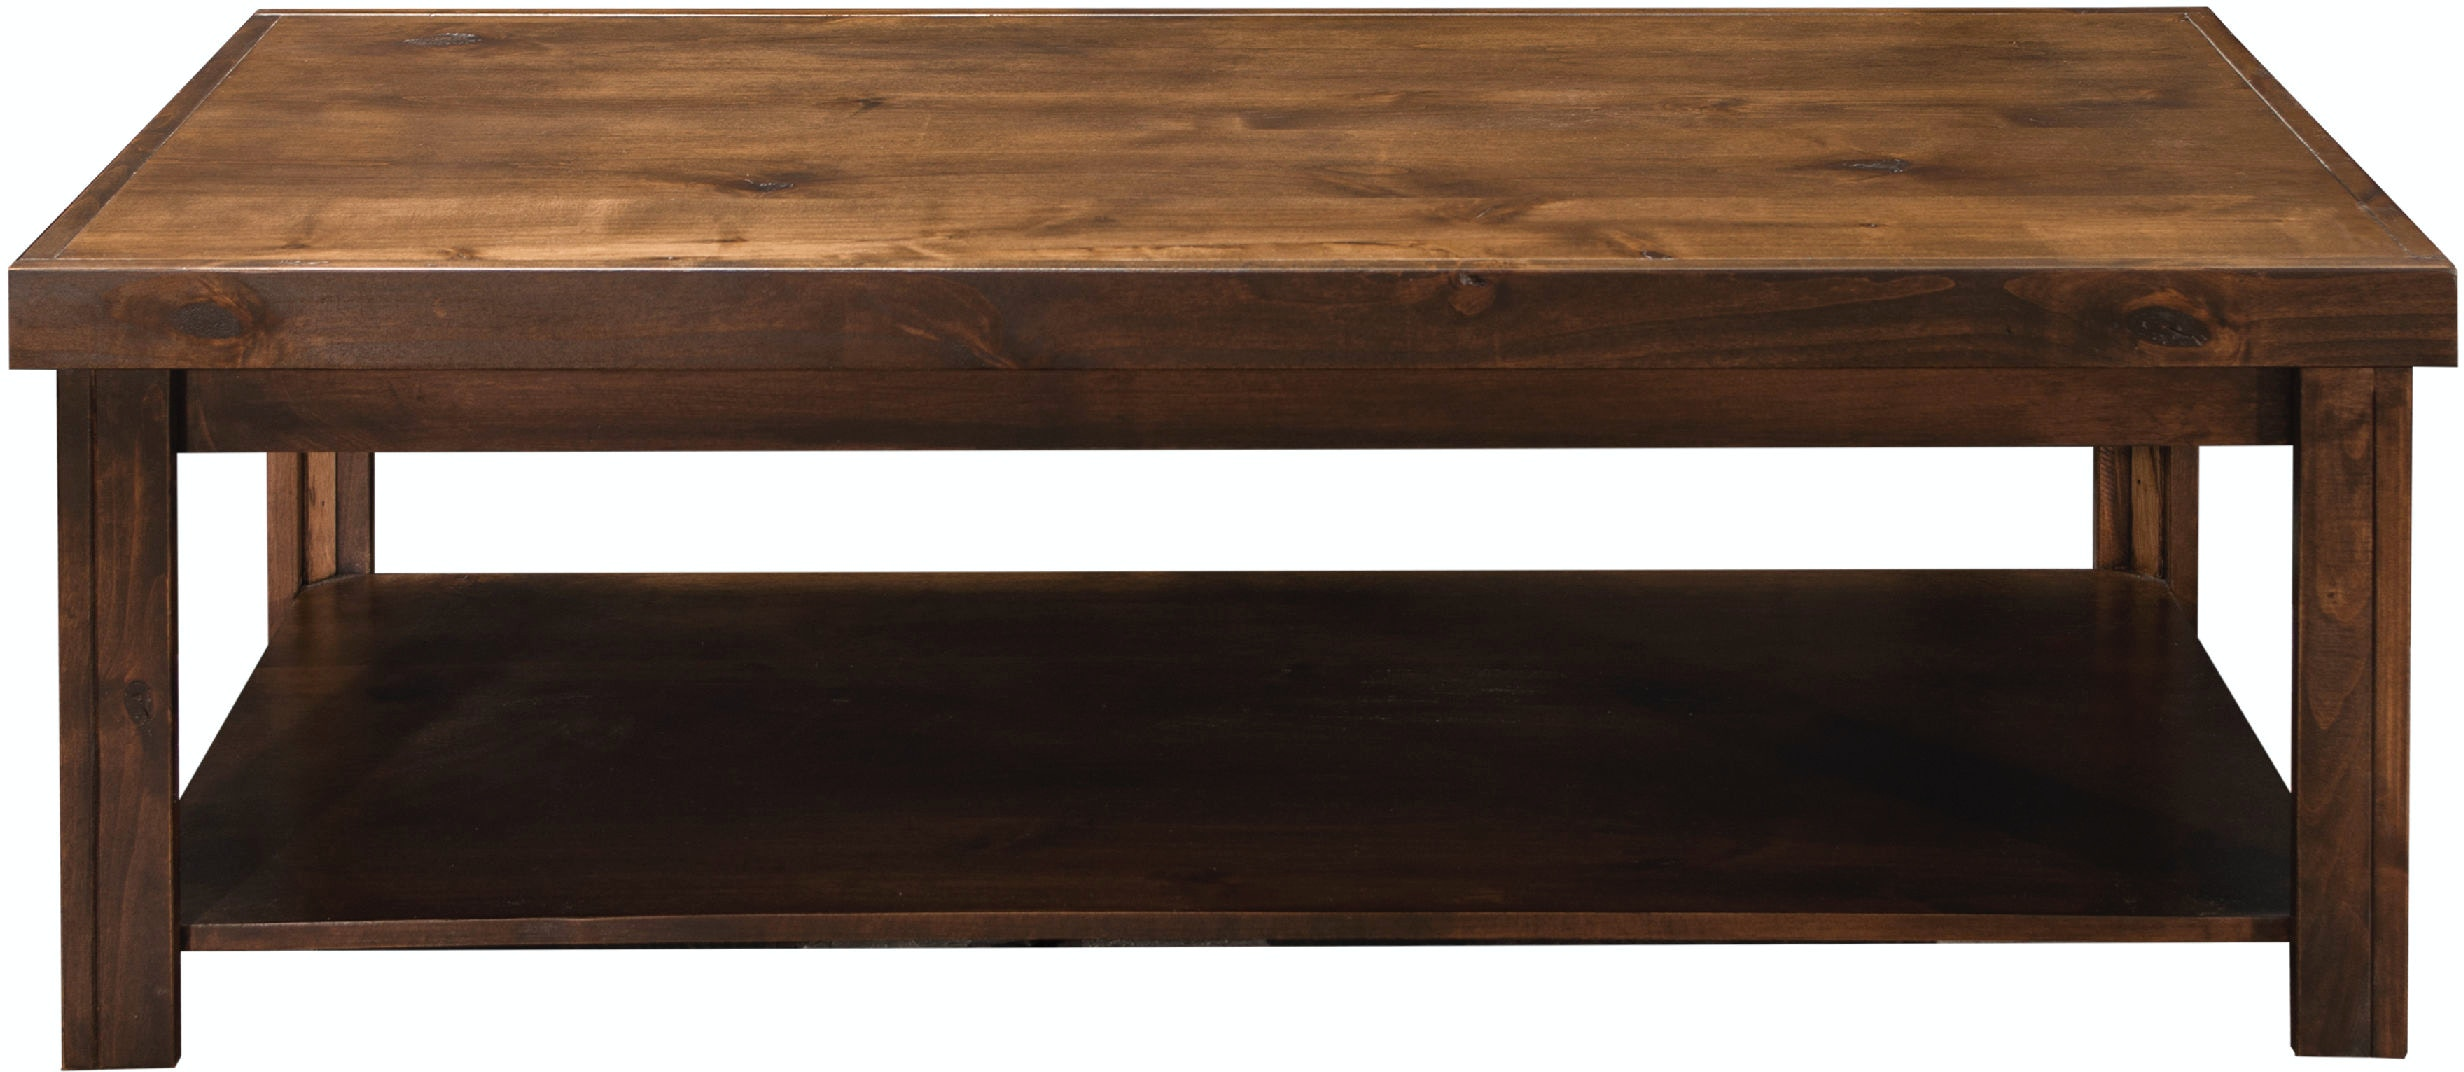 Legends Furniture Living Room Sausalito Coffee Table